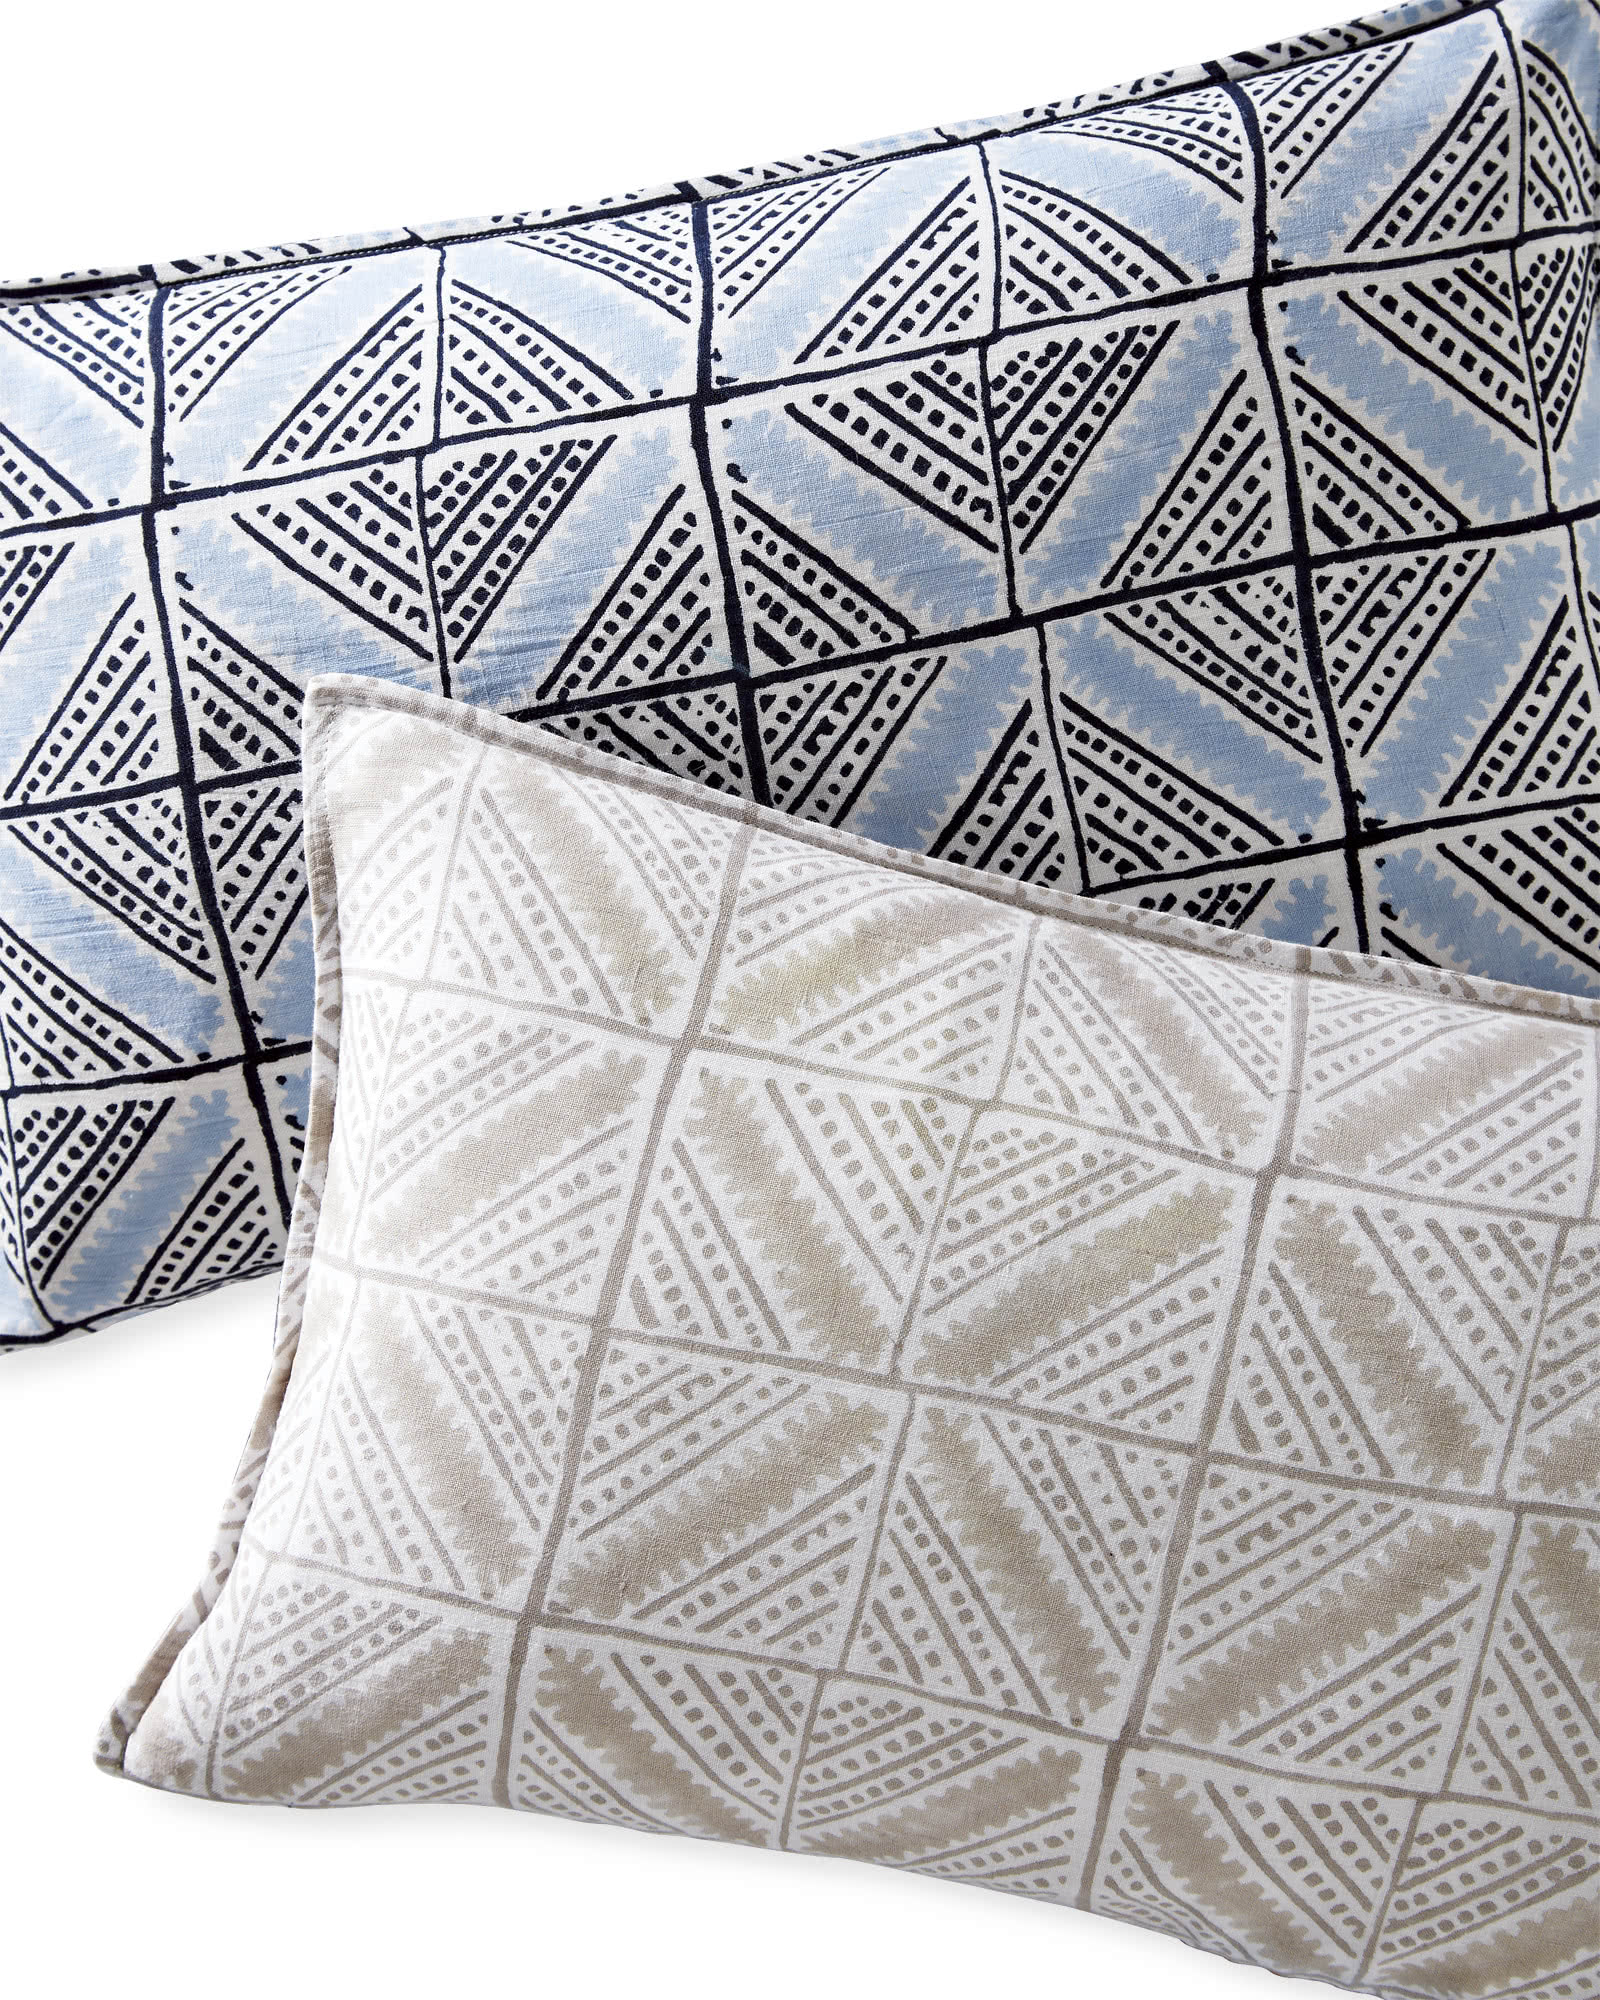 Sienna Small Tile Pillow Cover